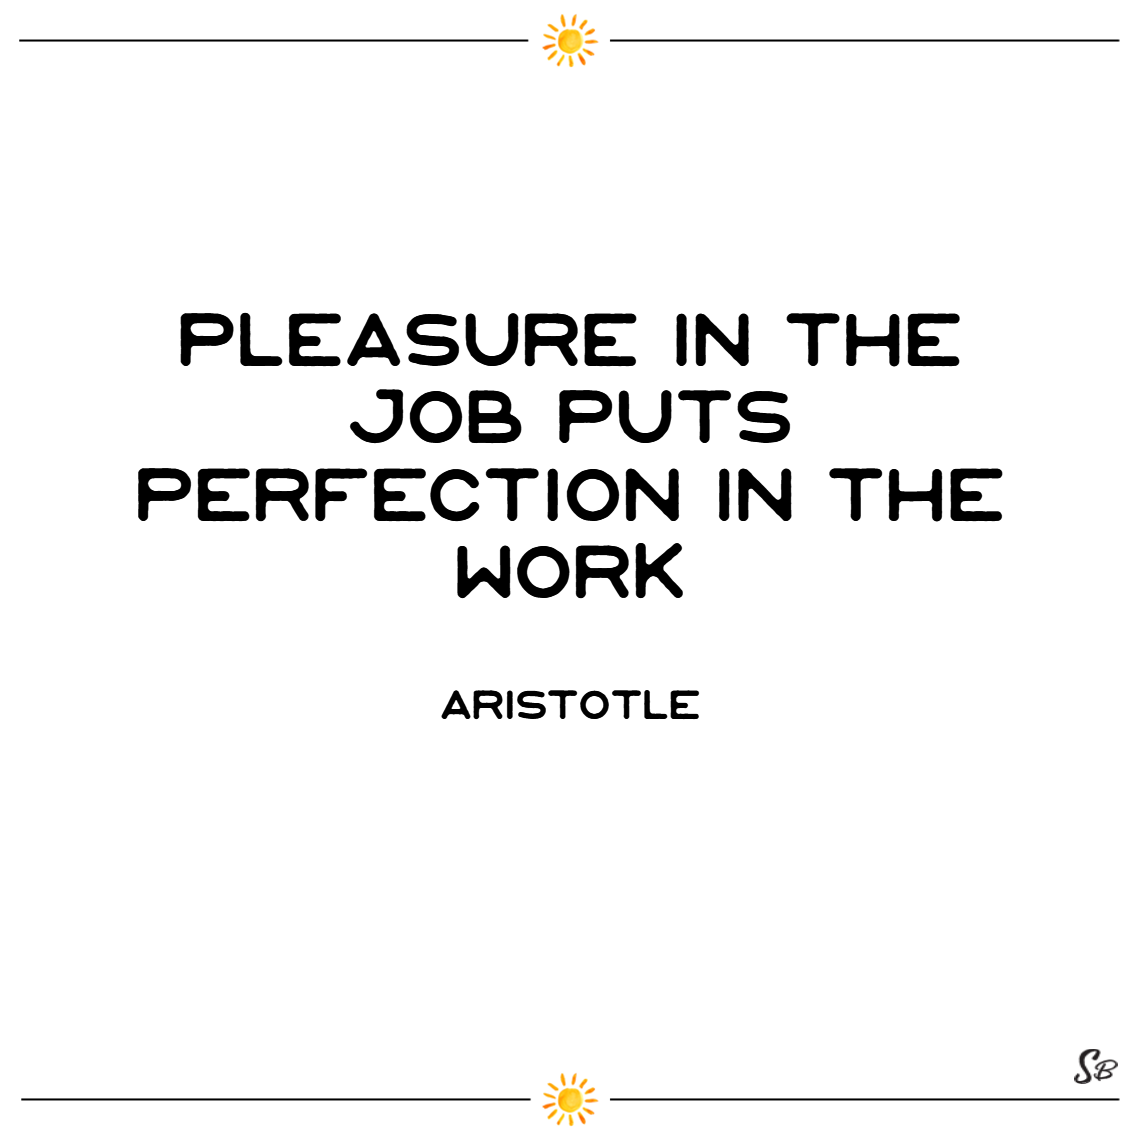 Pleasure in the job puts perfection in the work. – aristotle